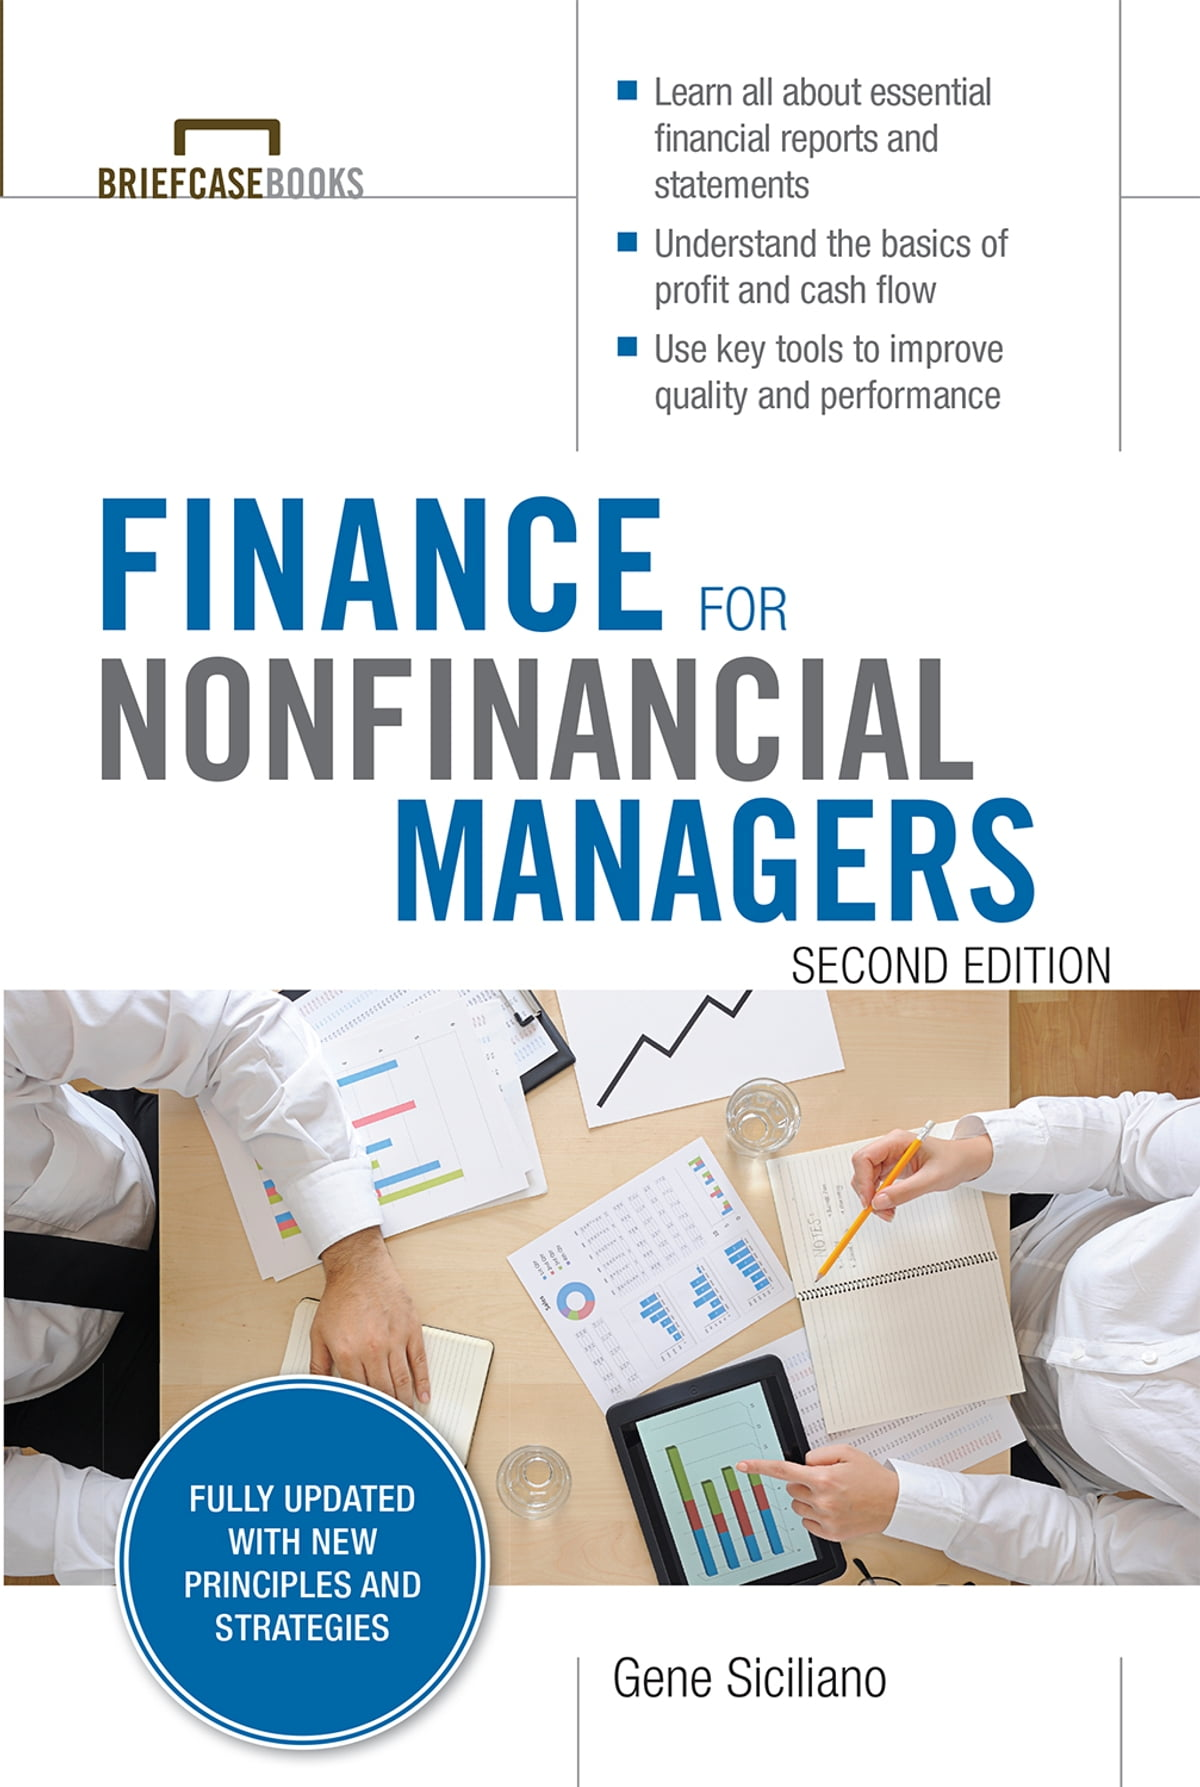 Finance for Nonfinancial Managers, Second Edition (Briefcase Books Series)  eBook by Gene Siciliano - 9780071824378 | Rakuten Kobo